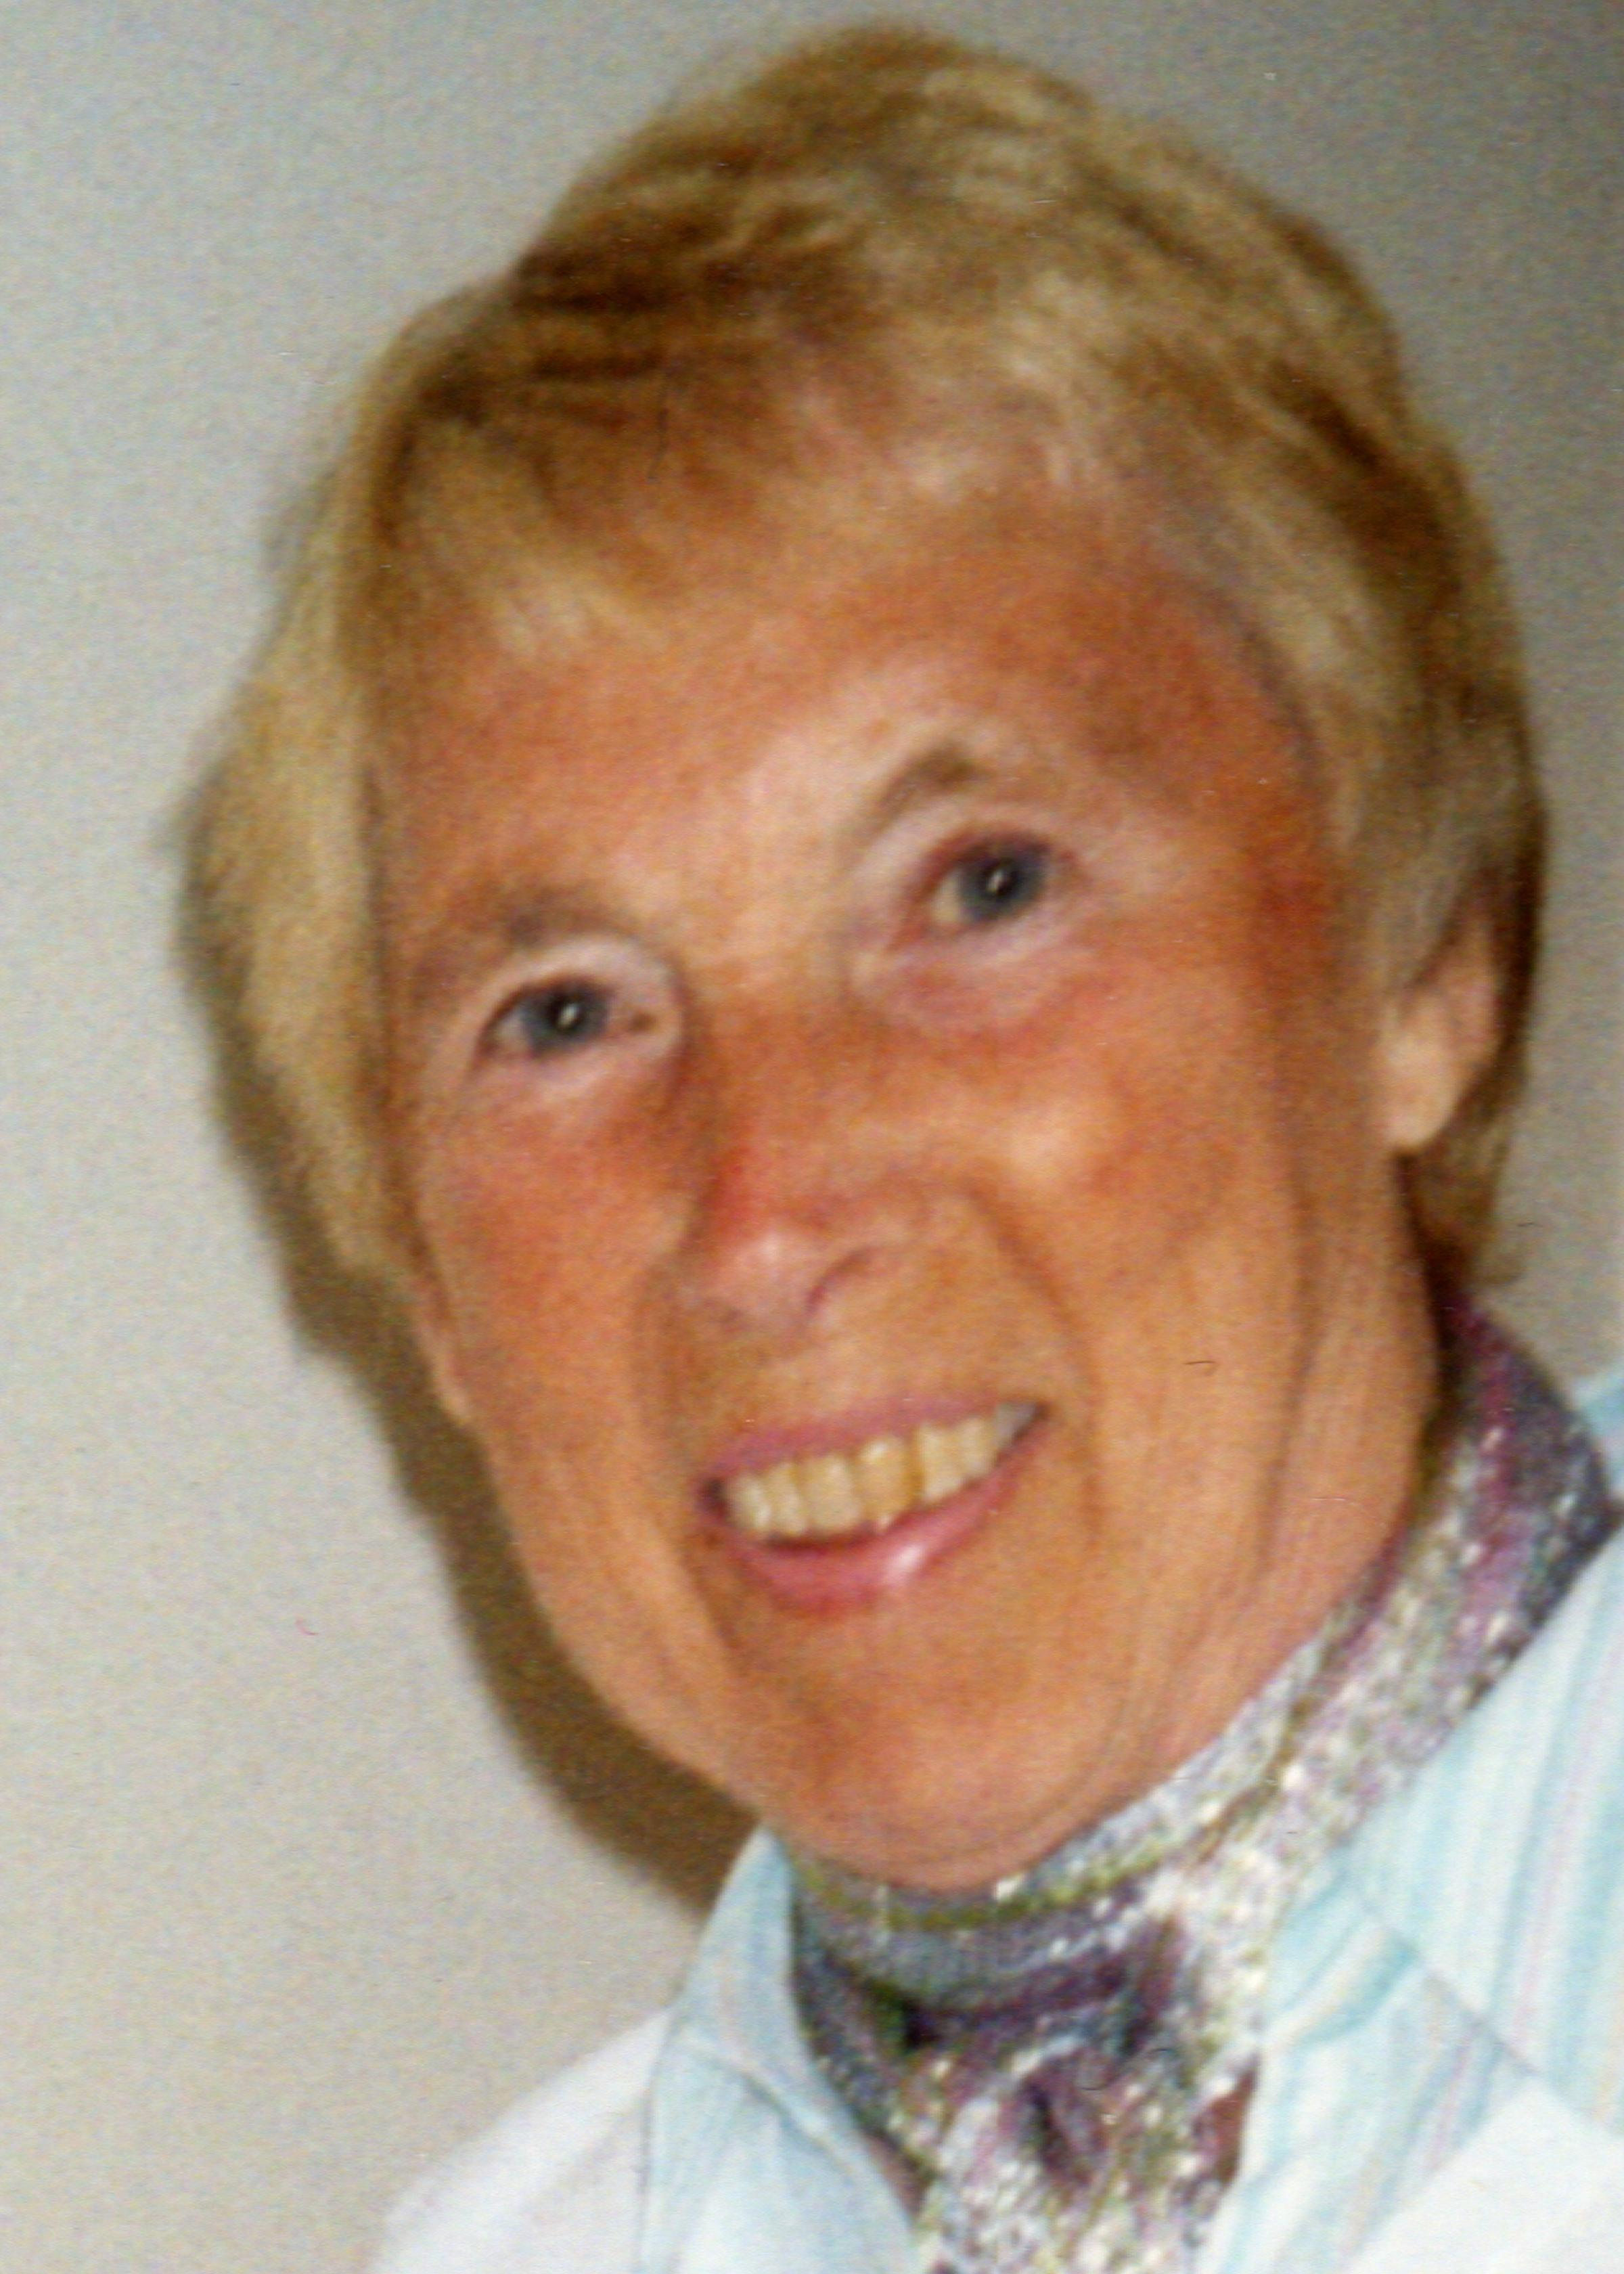 Mrs Sledmere passed away in November 2016